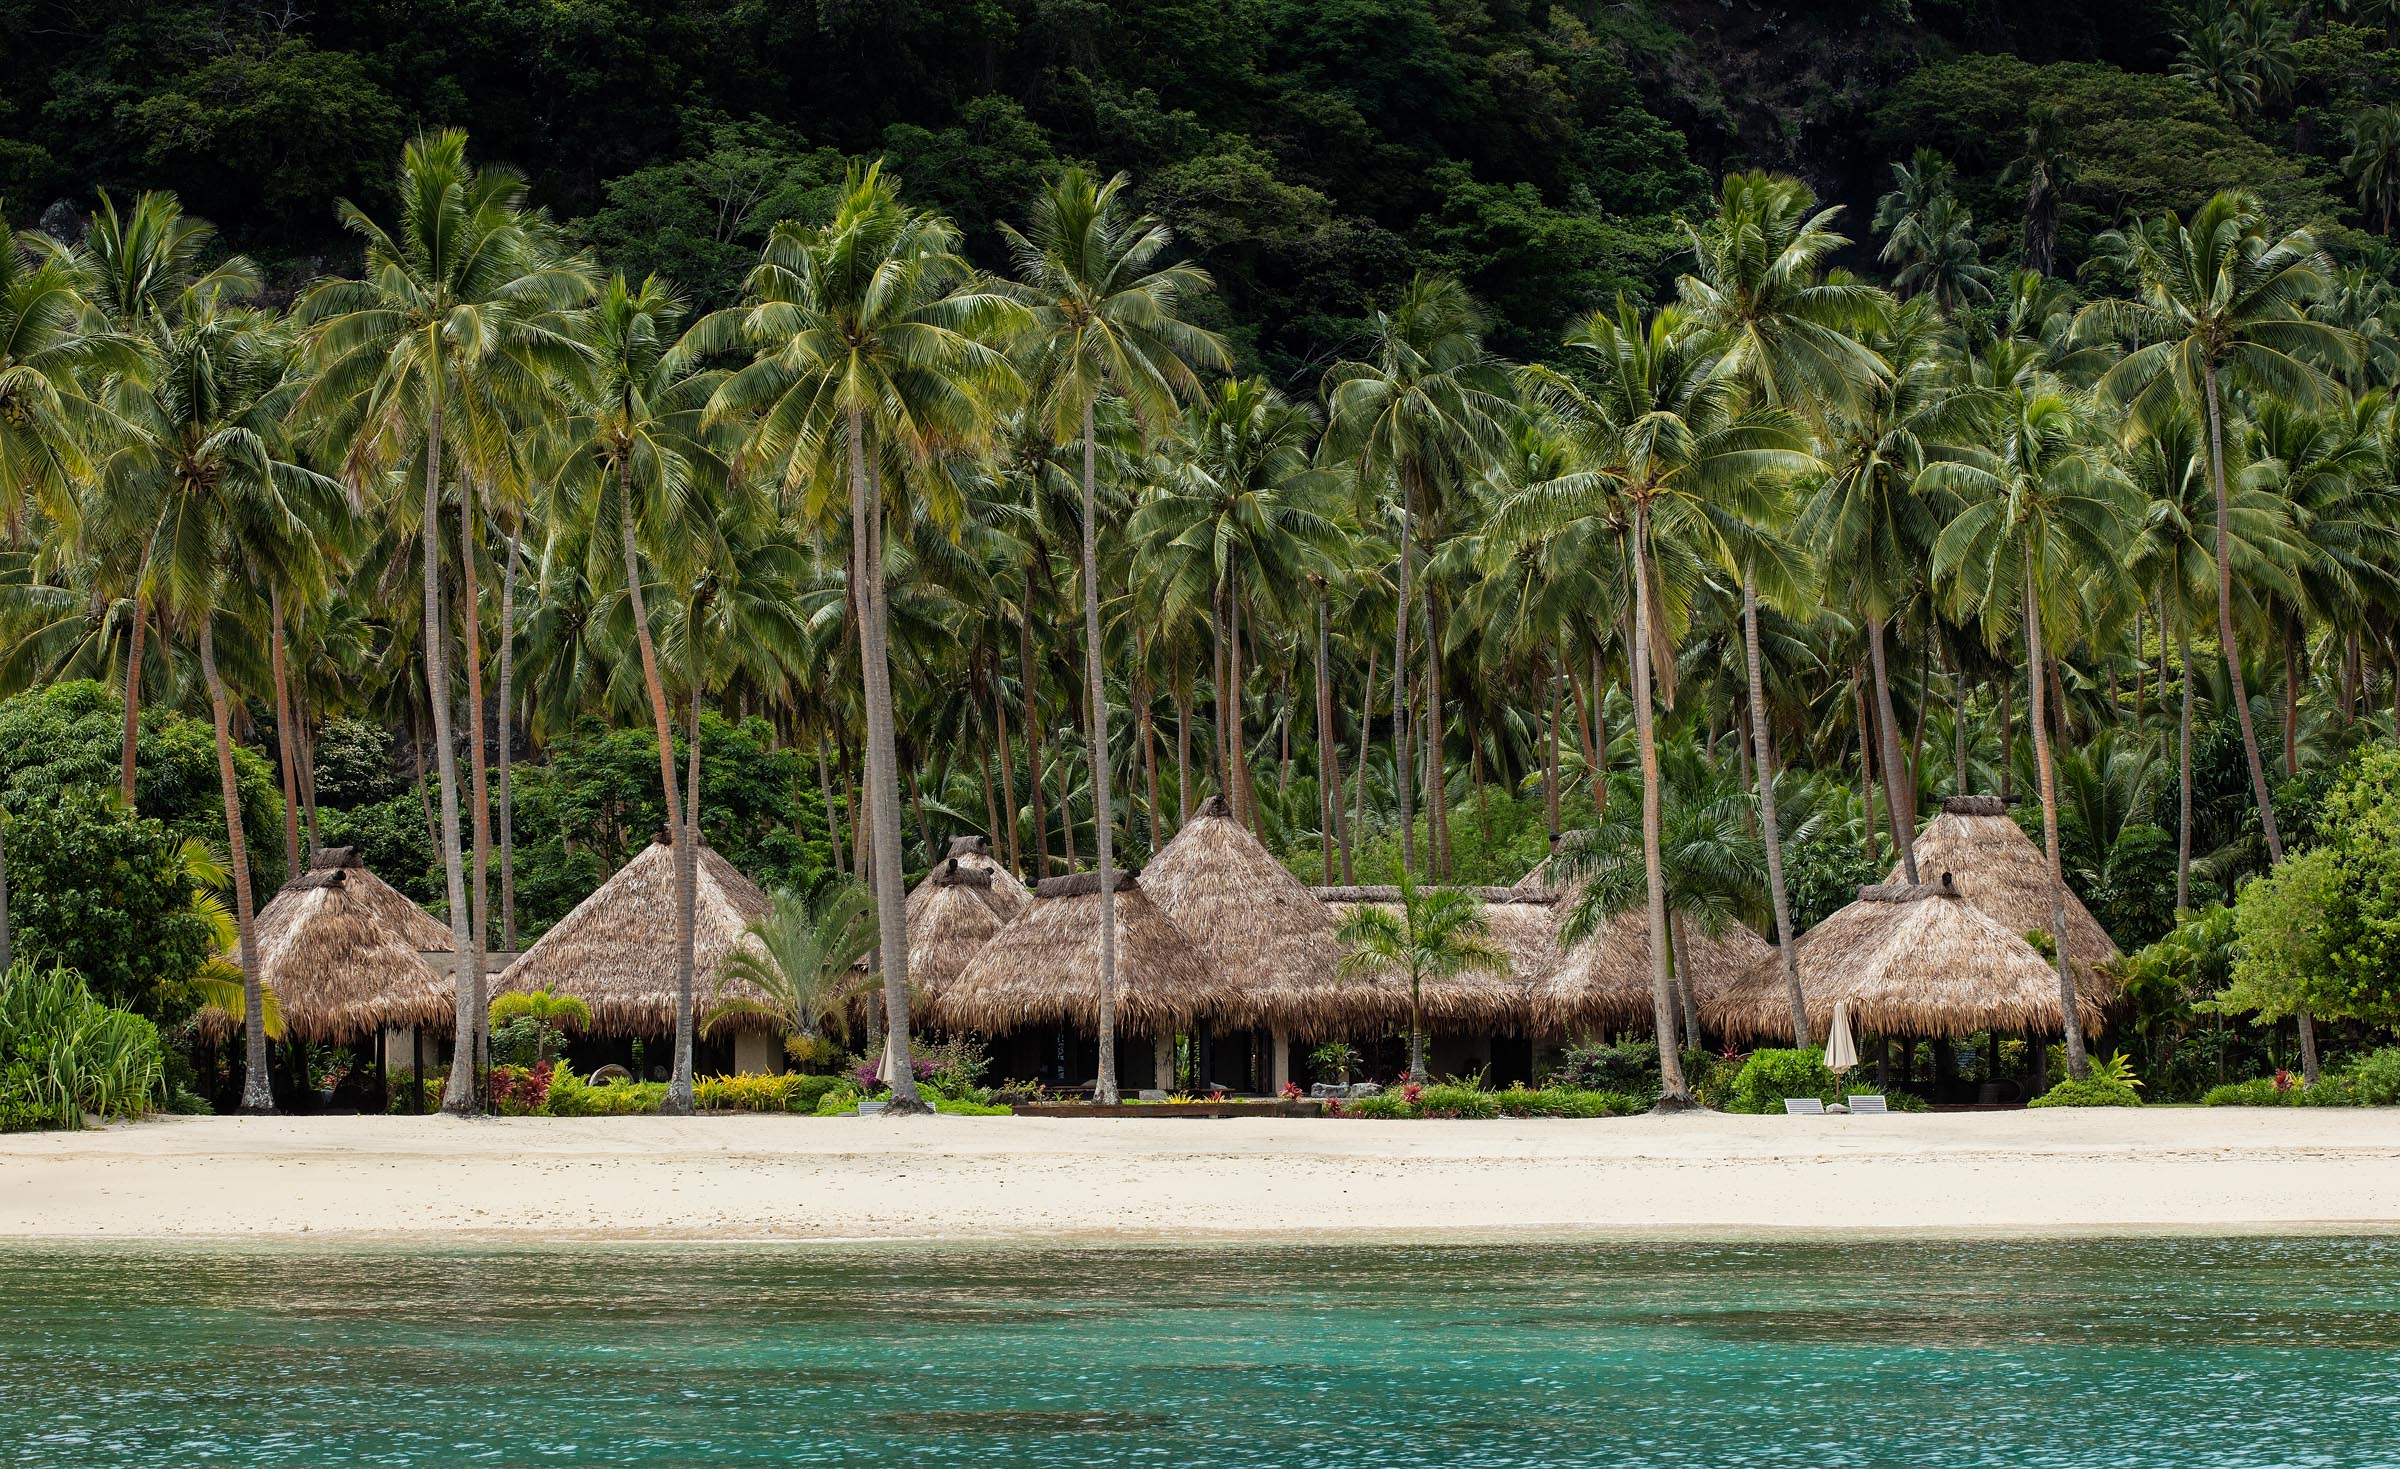 Private villas along the shore at the Laucala Island Resort.